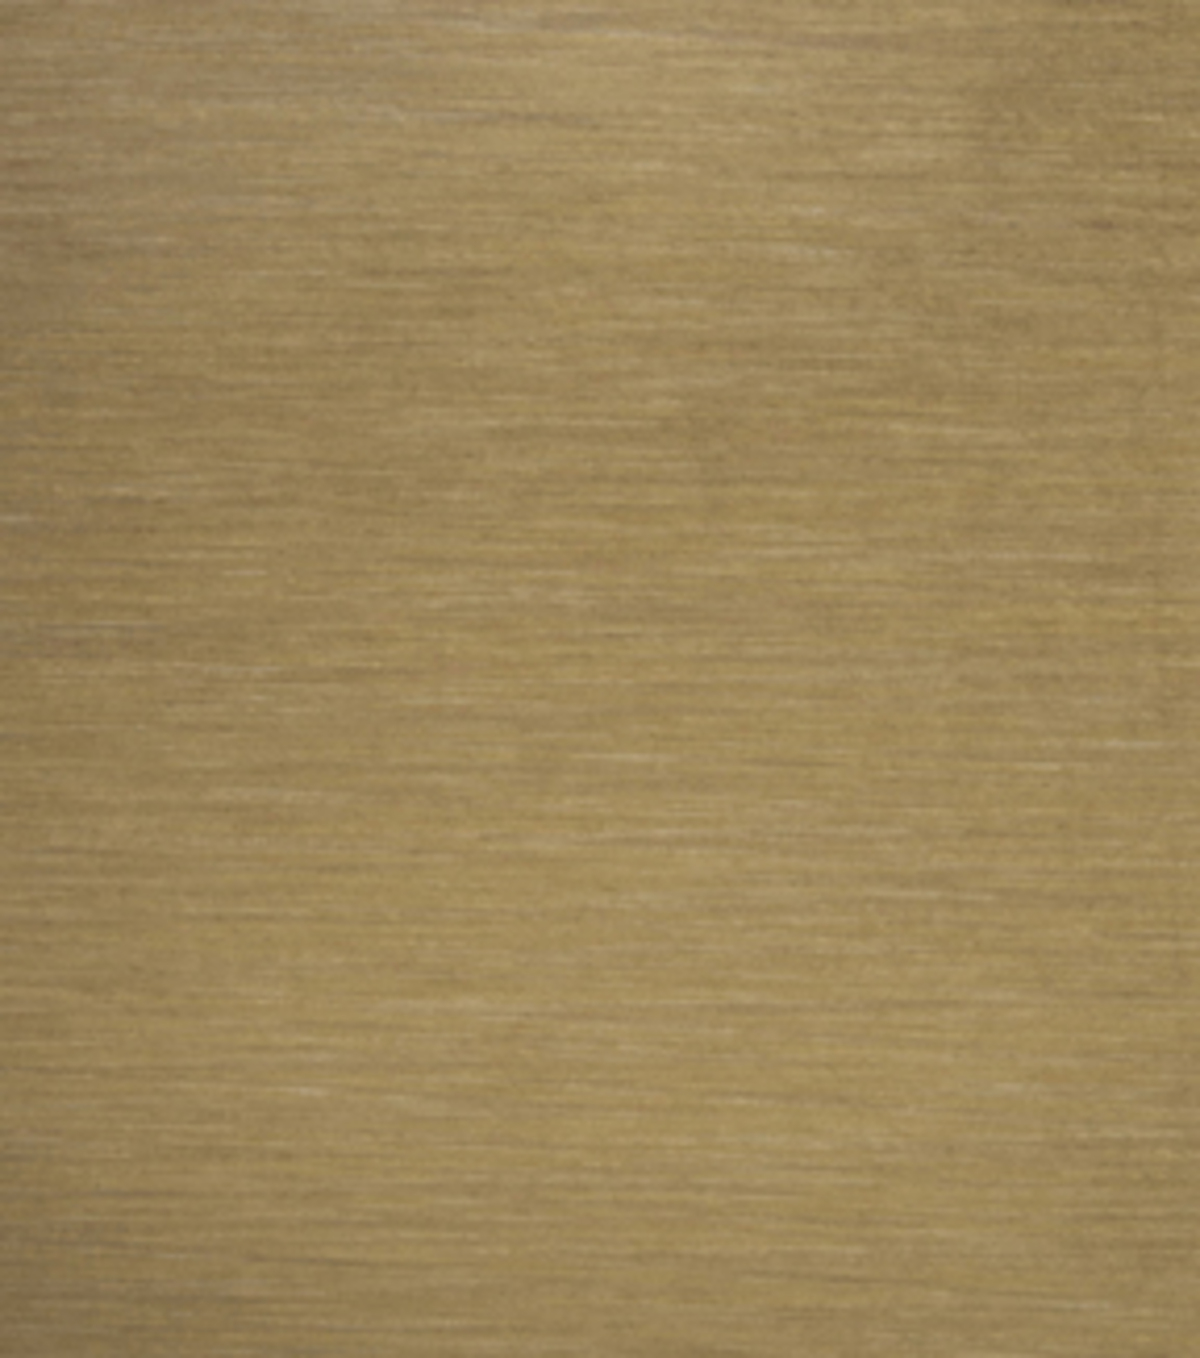 Home Decor 8\u0022x8\u0022 Fabric Swatch--Signature Series Shelburne-Sprout